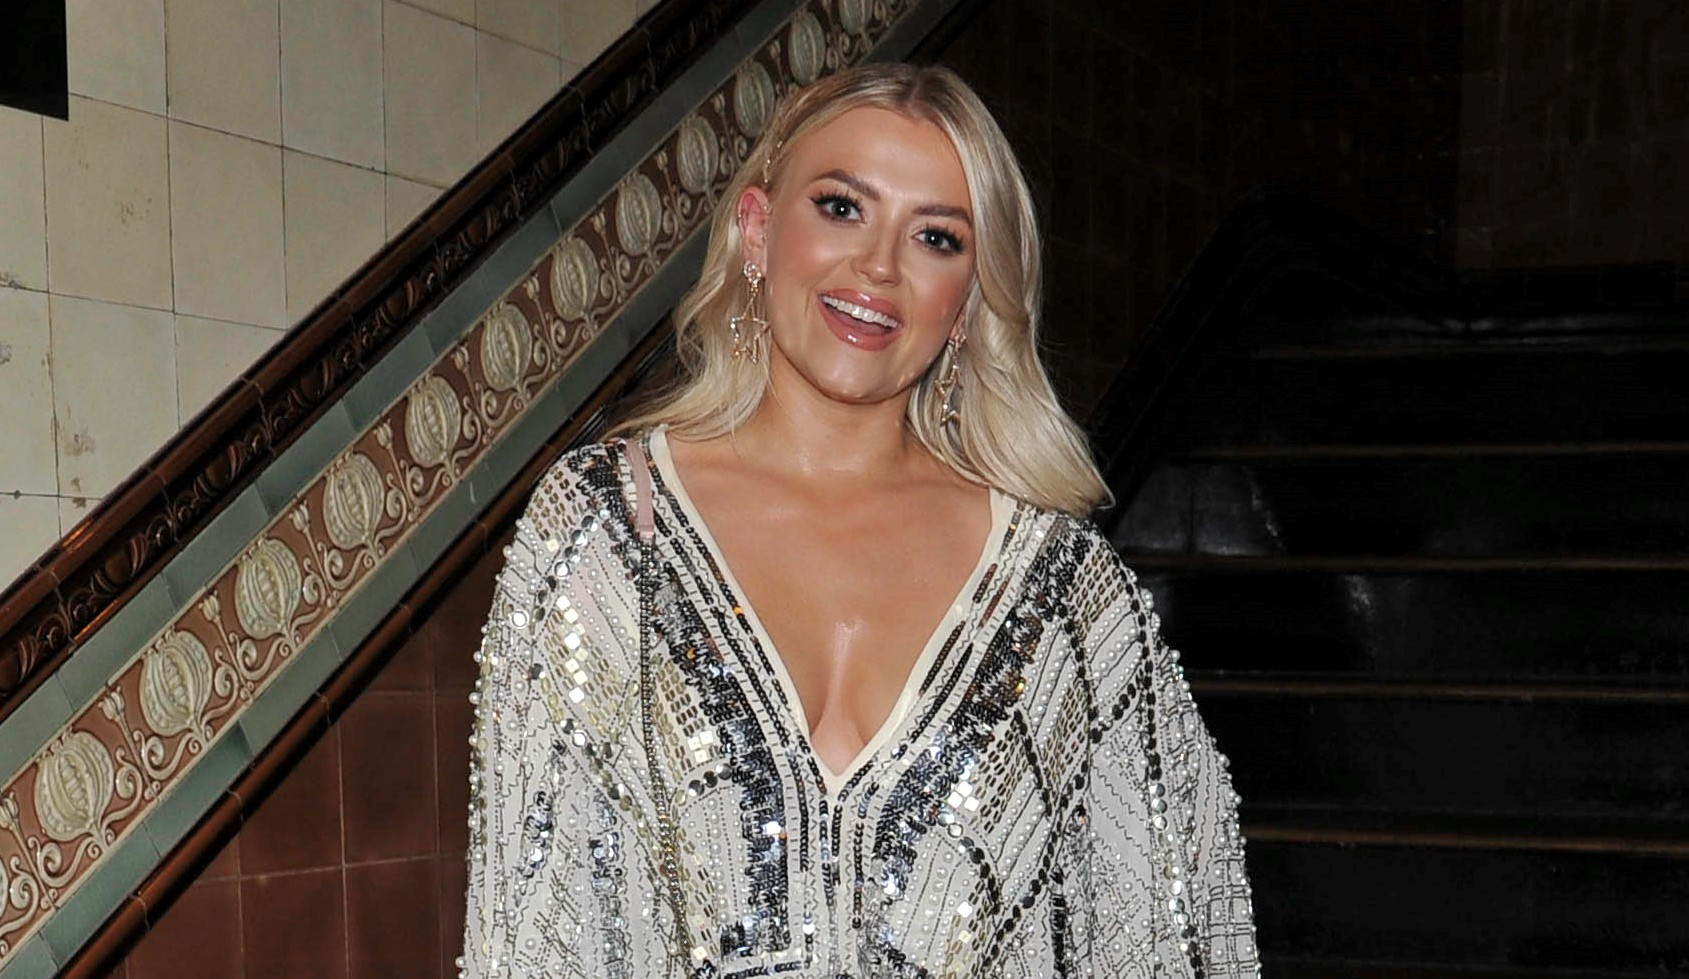 Fans say Lucy Fallon 'still looks hot' as she dresses up as a man for 'new role'